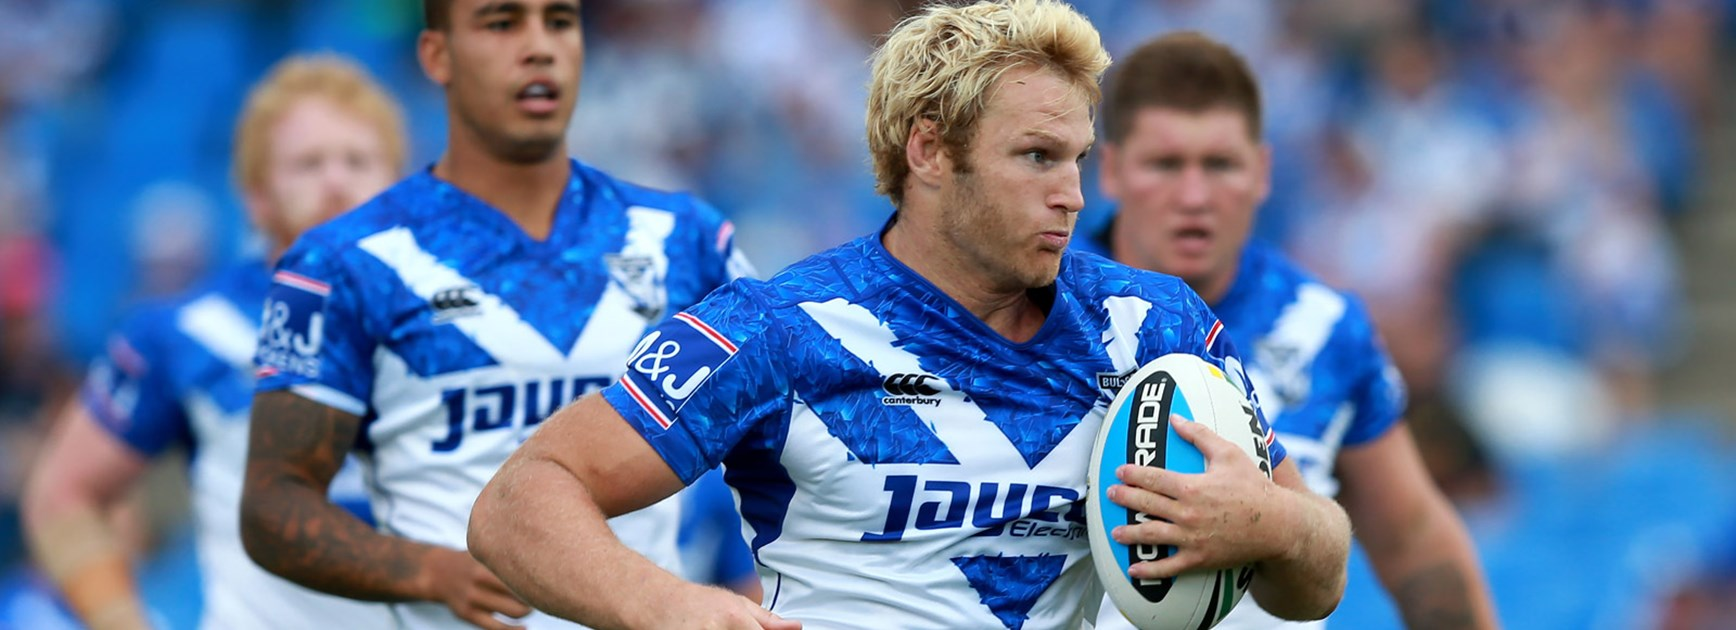 Bulldogs prop Aiden Tolman in action during his side's trial win over the Storm.